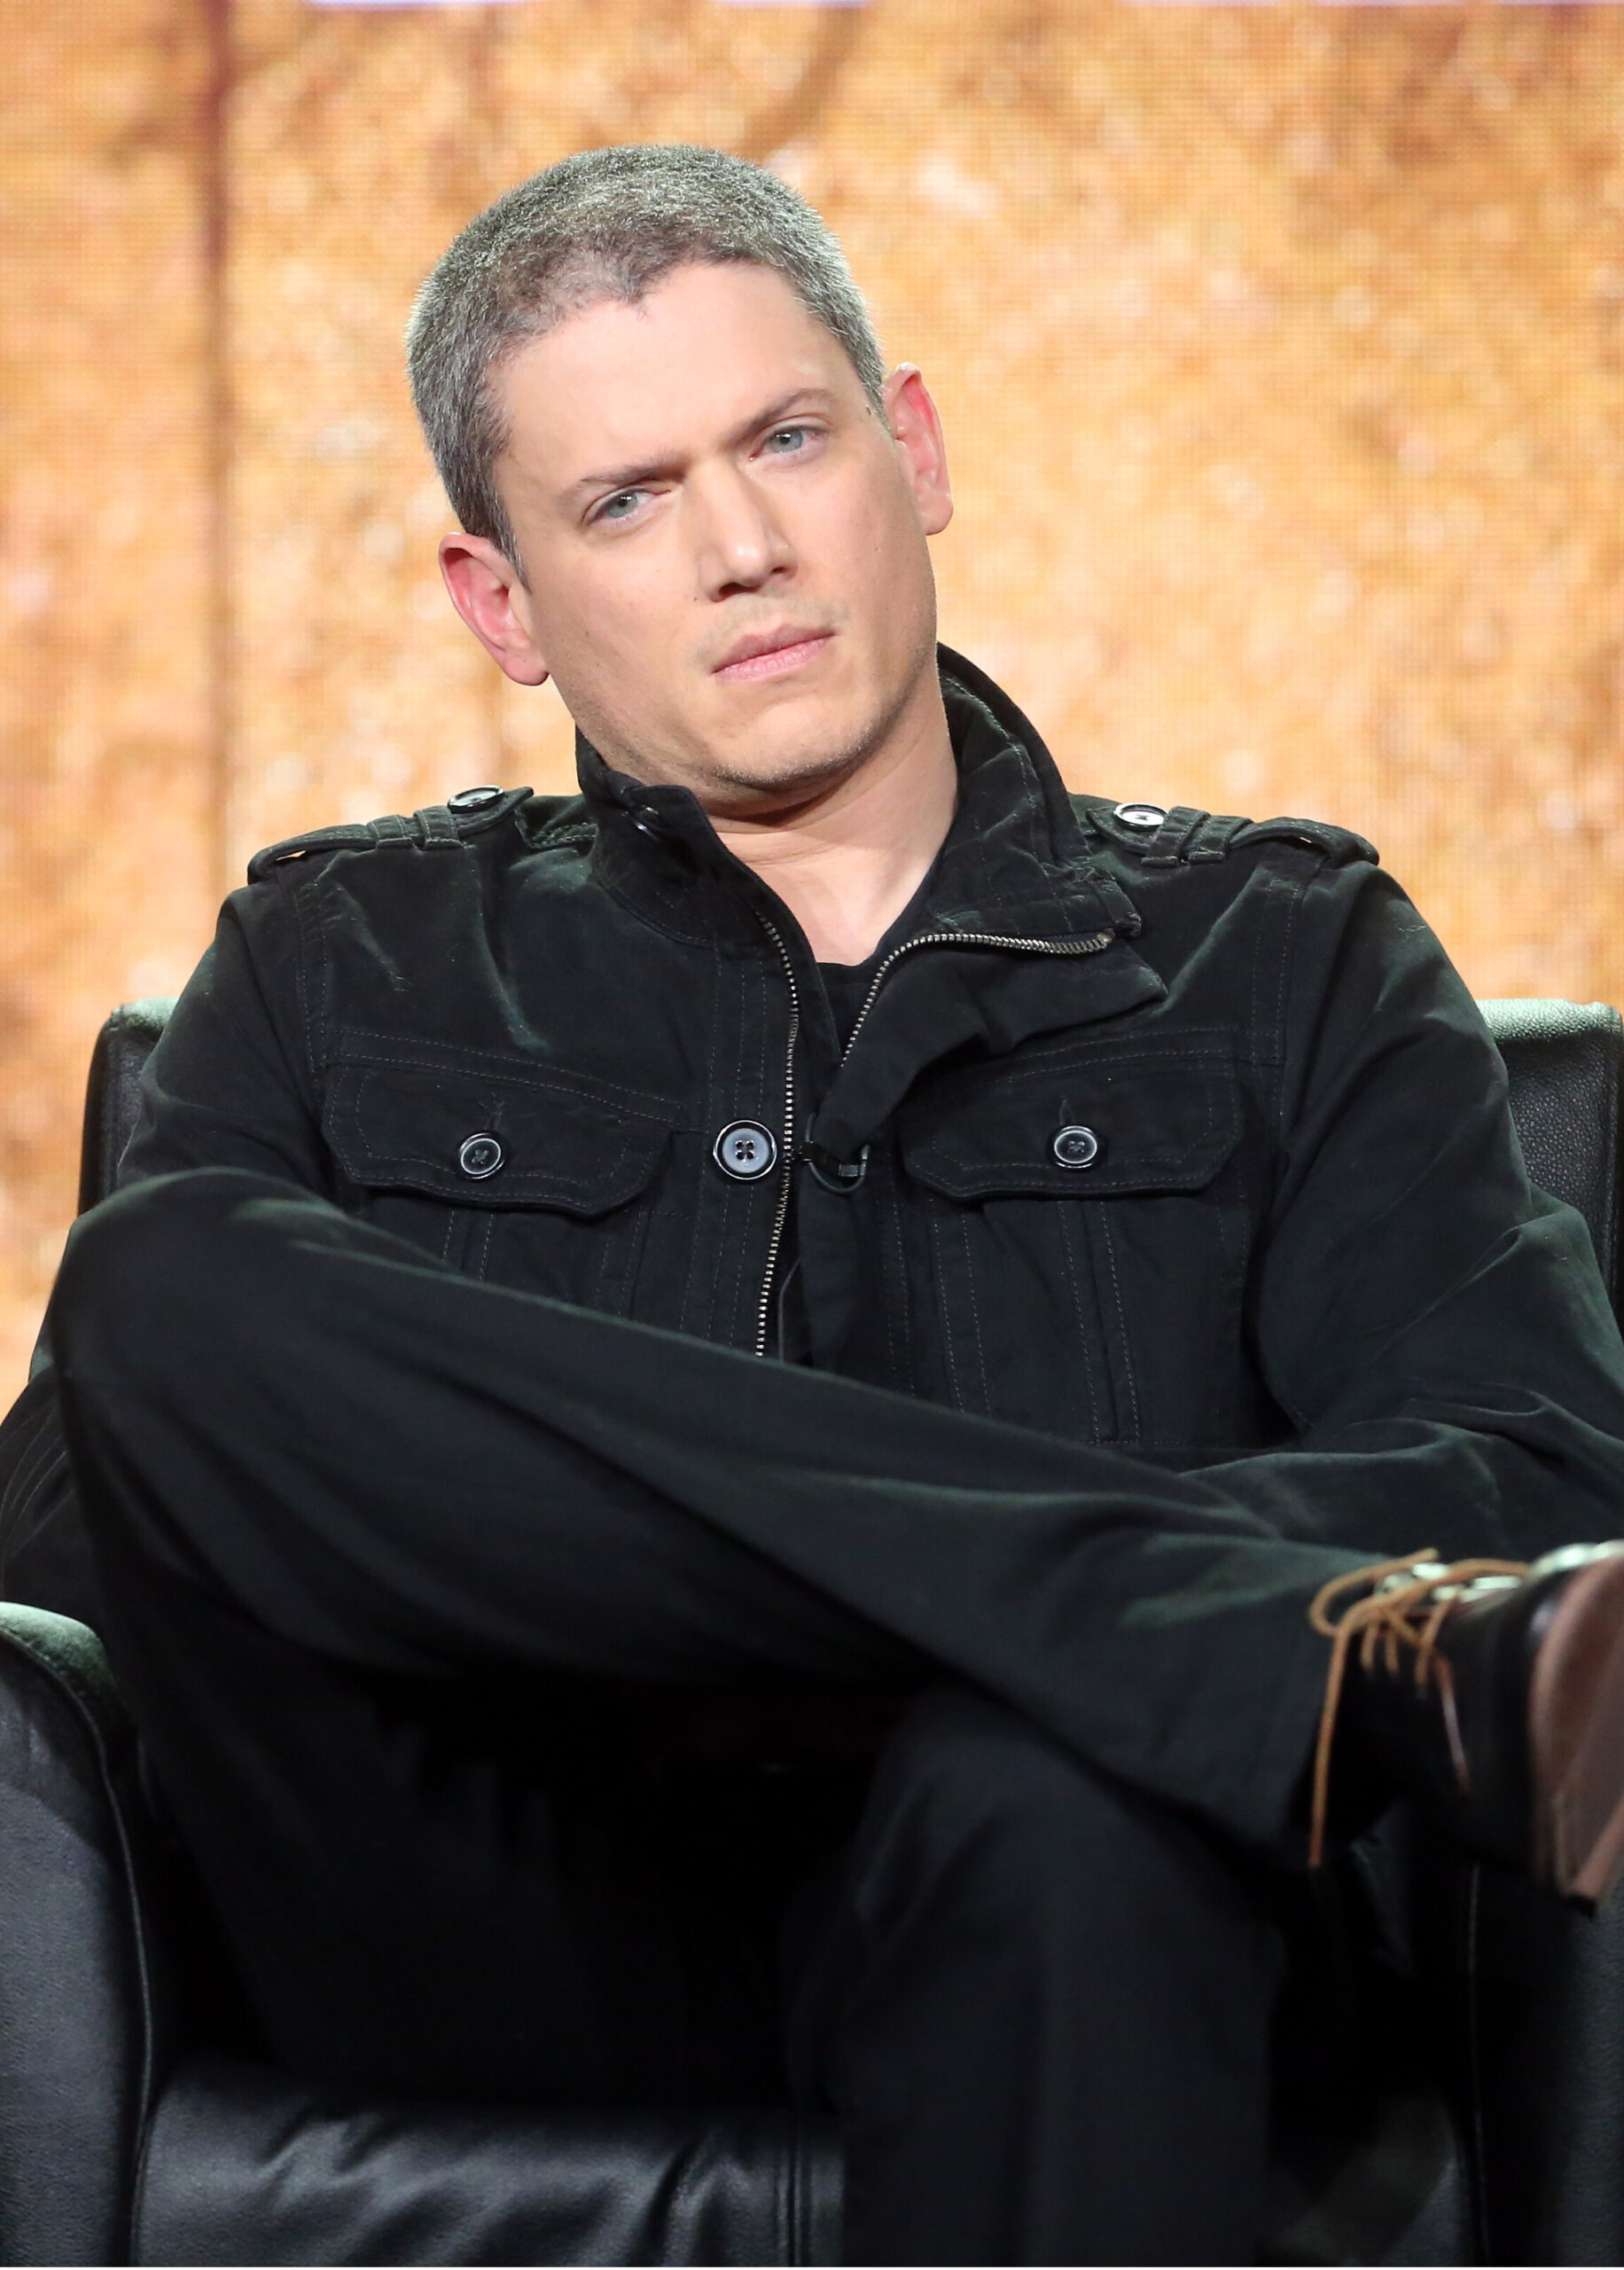 <i>Frederick M. Brown/Getty Images</i><br/>Wentworth Miller has revealed he received an autism diagnosis a year ago